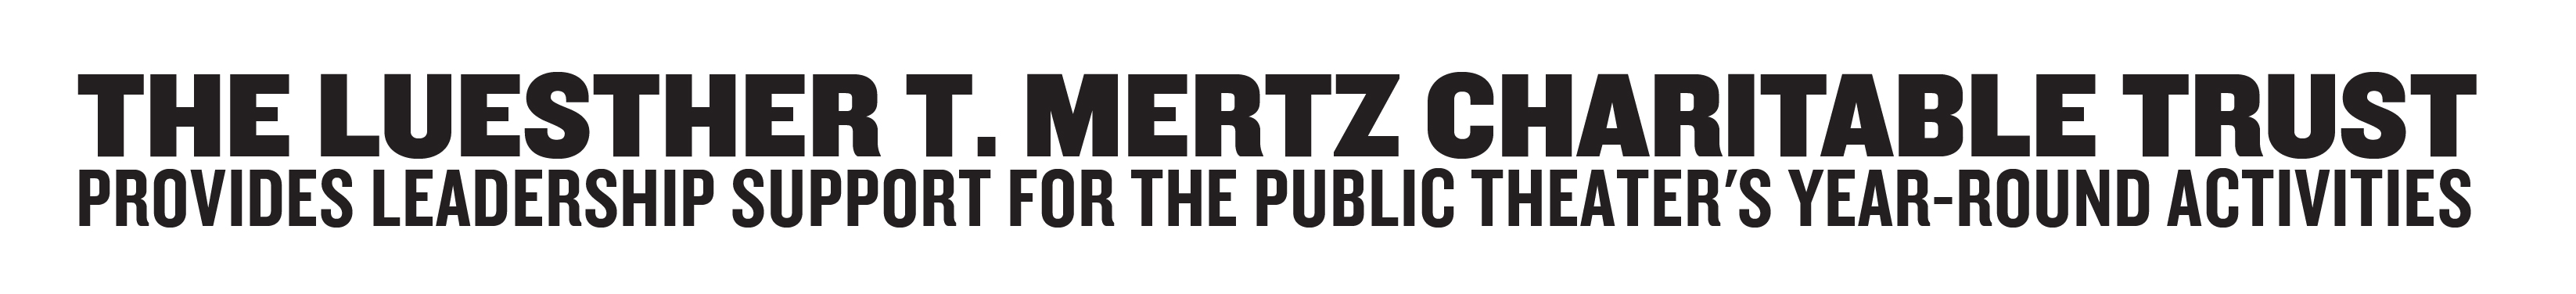 Luesther T. Mertz Foundation